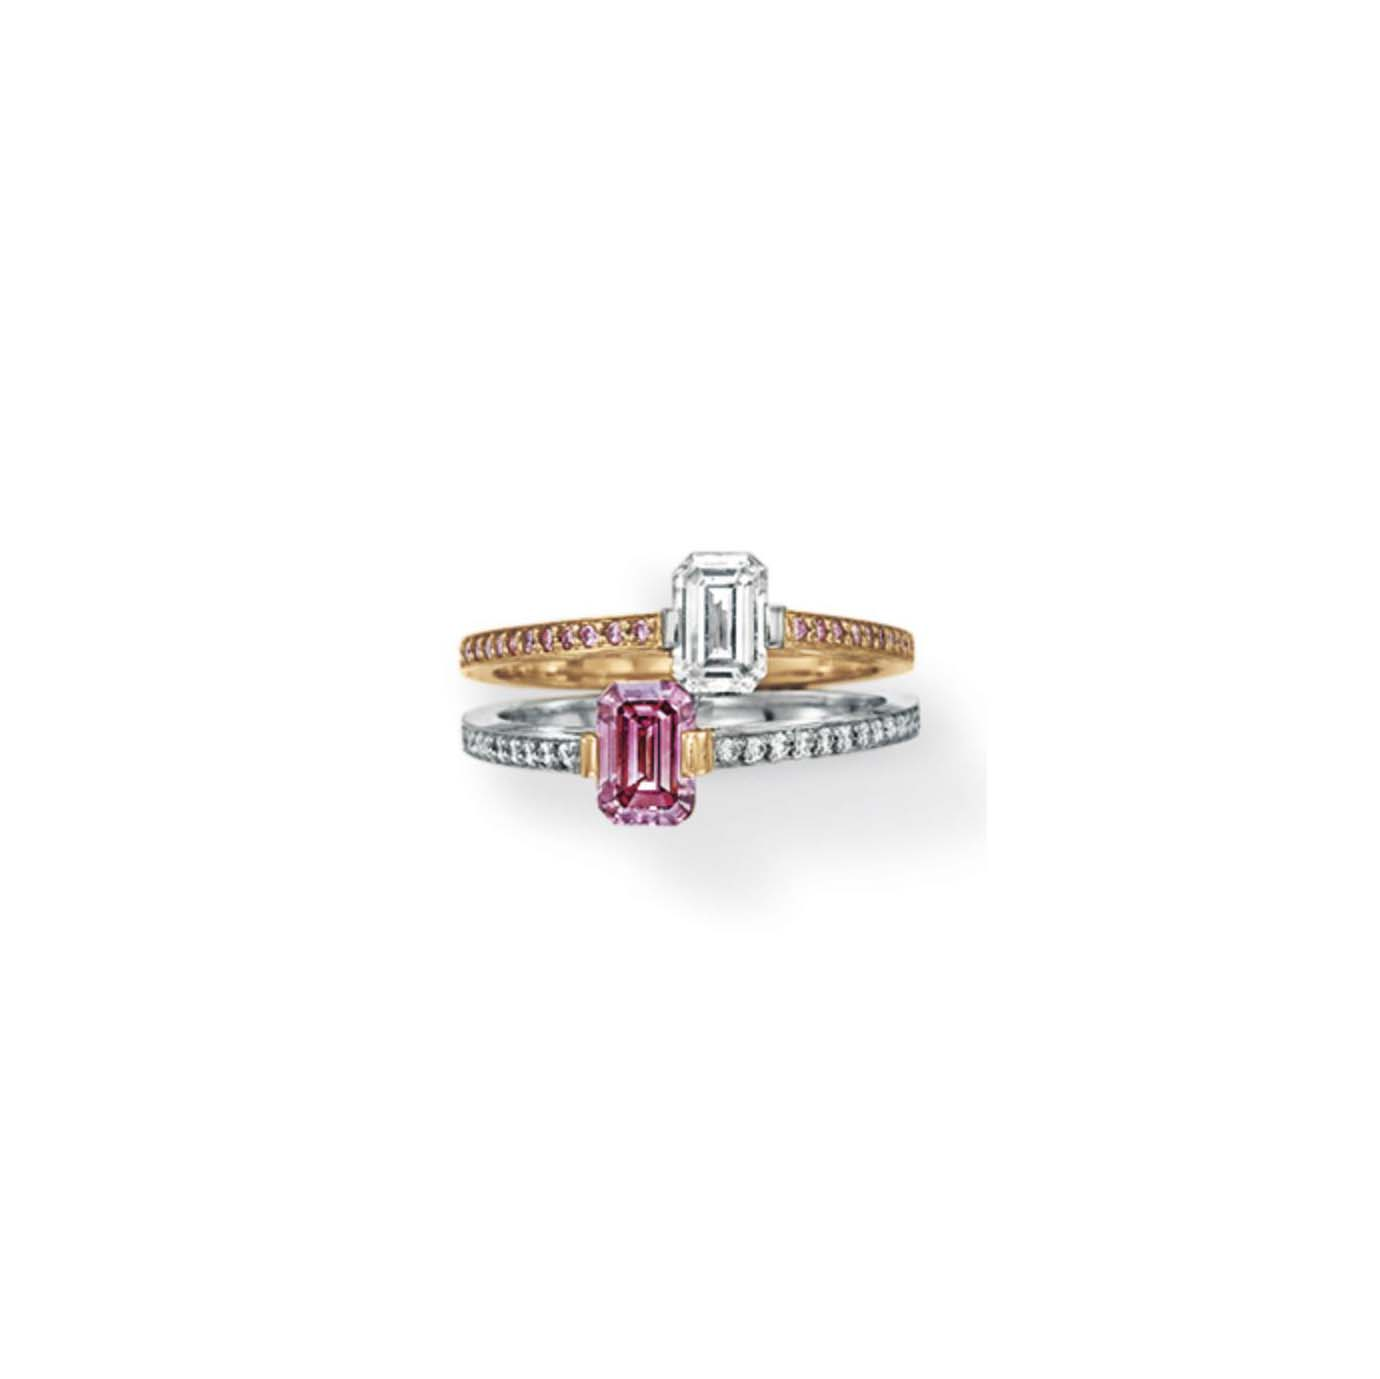 A COLORED DIAMOND AND DIAMOND TWO-STONE RING